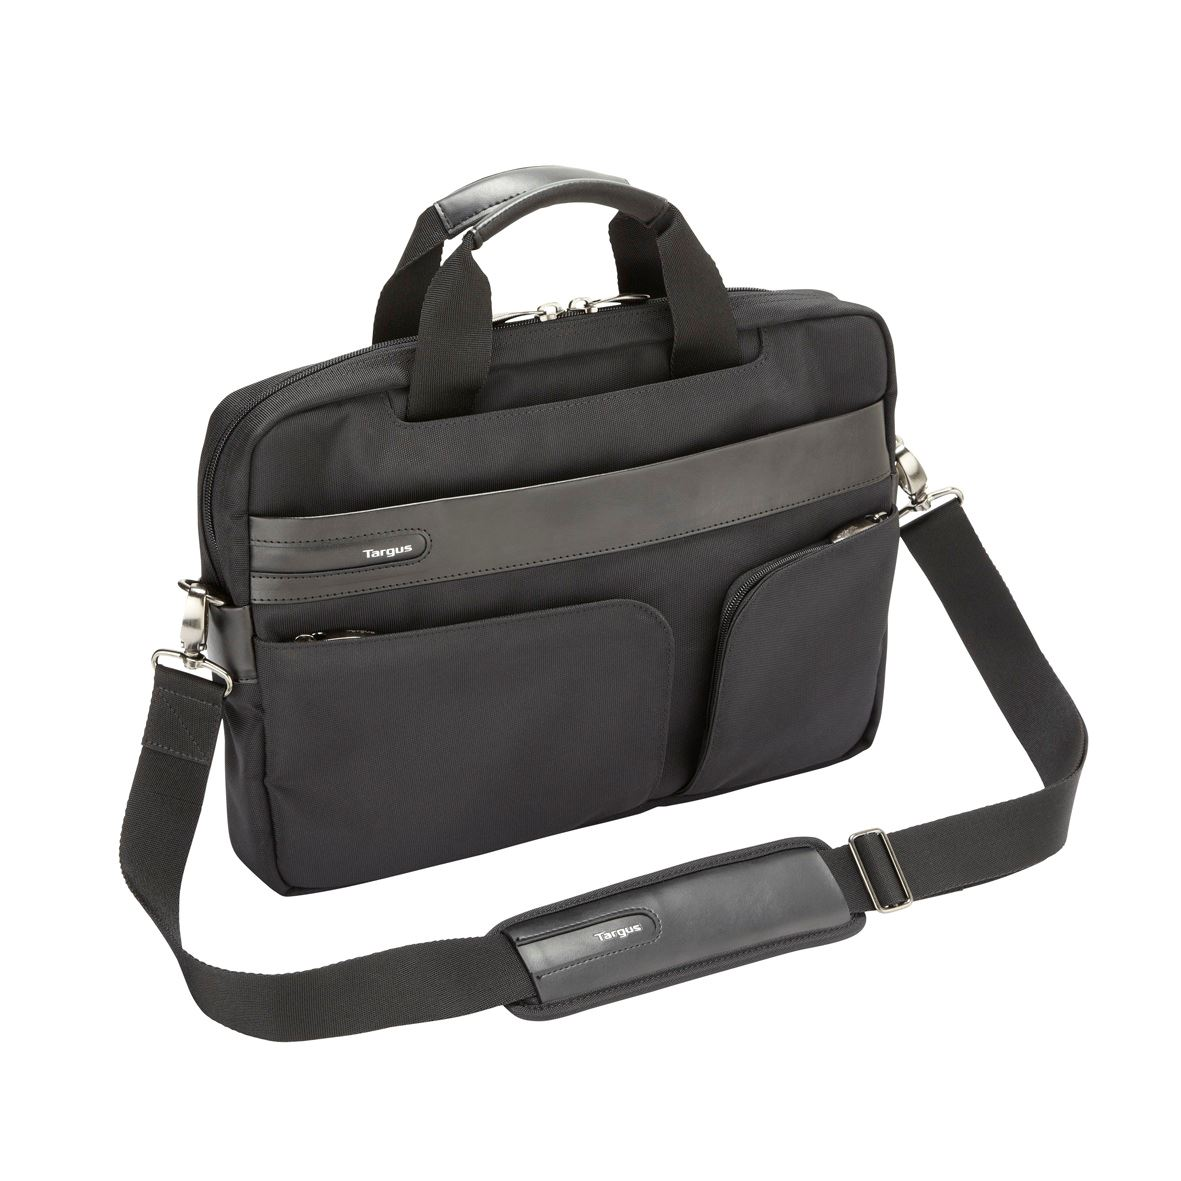 """TBT241US Targus Lomax Ultra Thin Top load Bag for 15.6/"""" Laptops"""